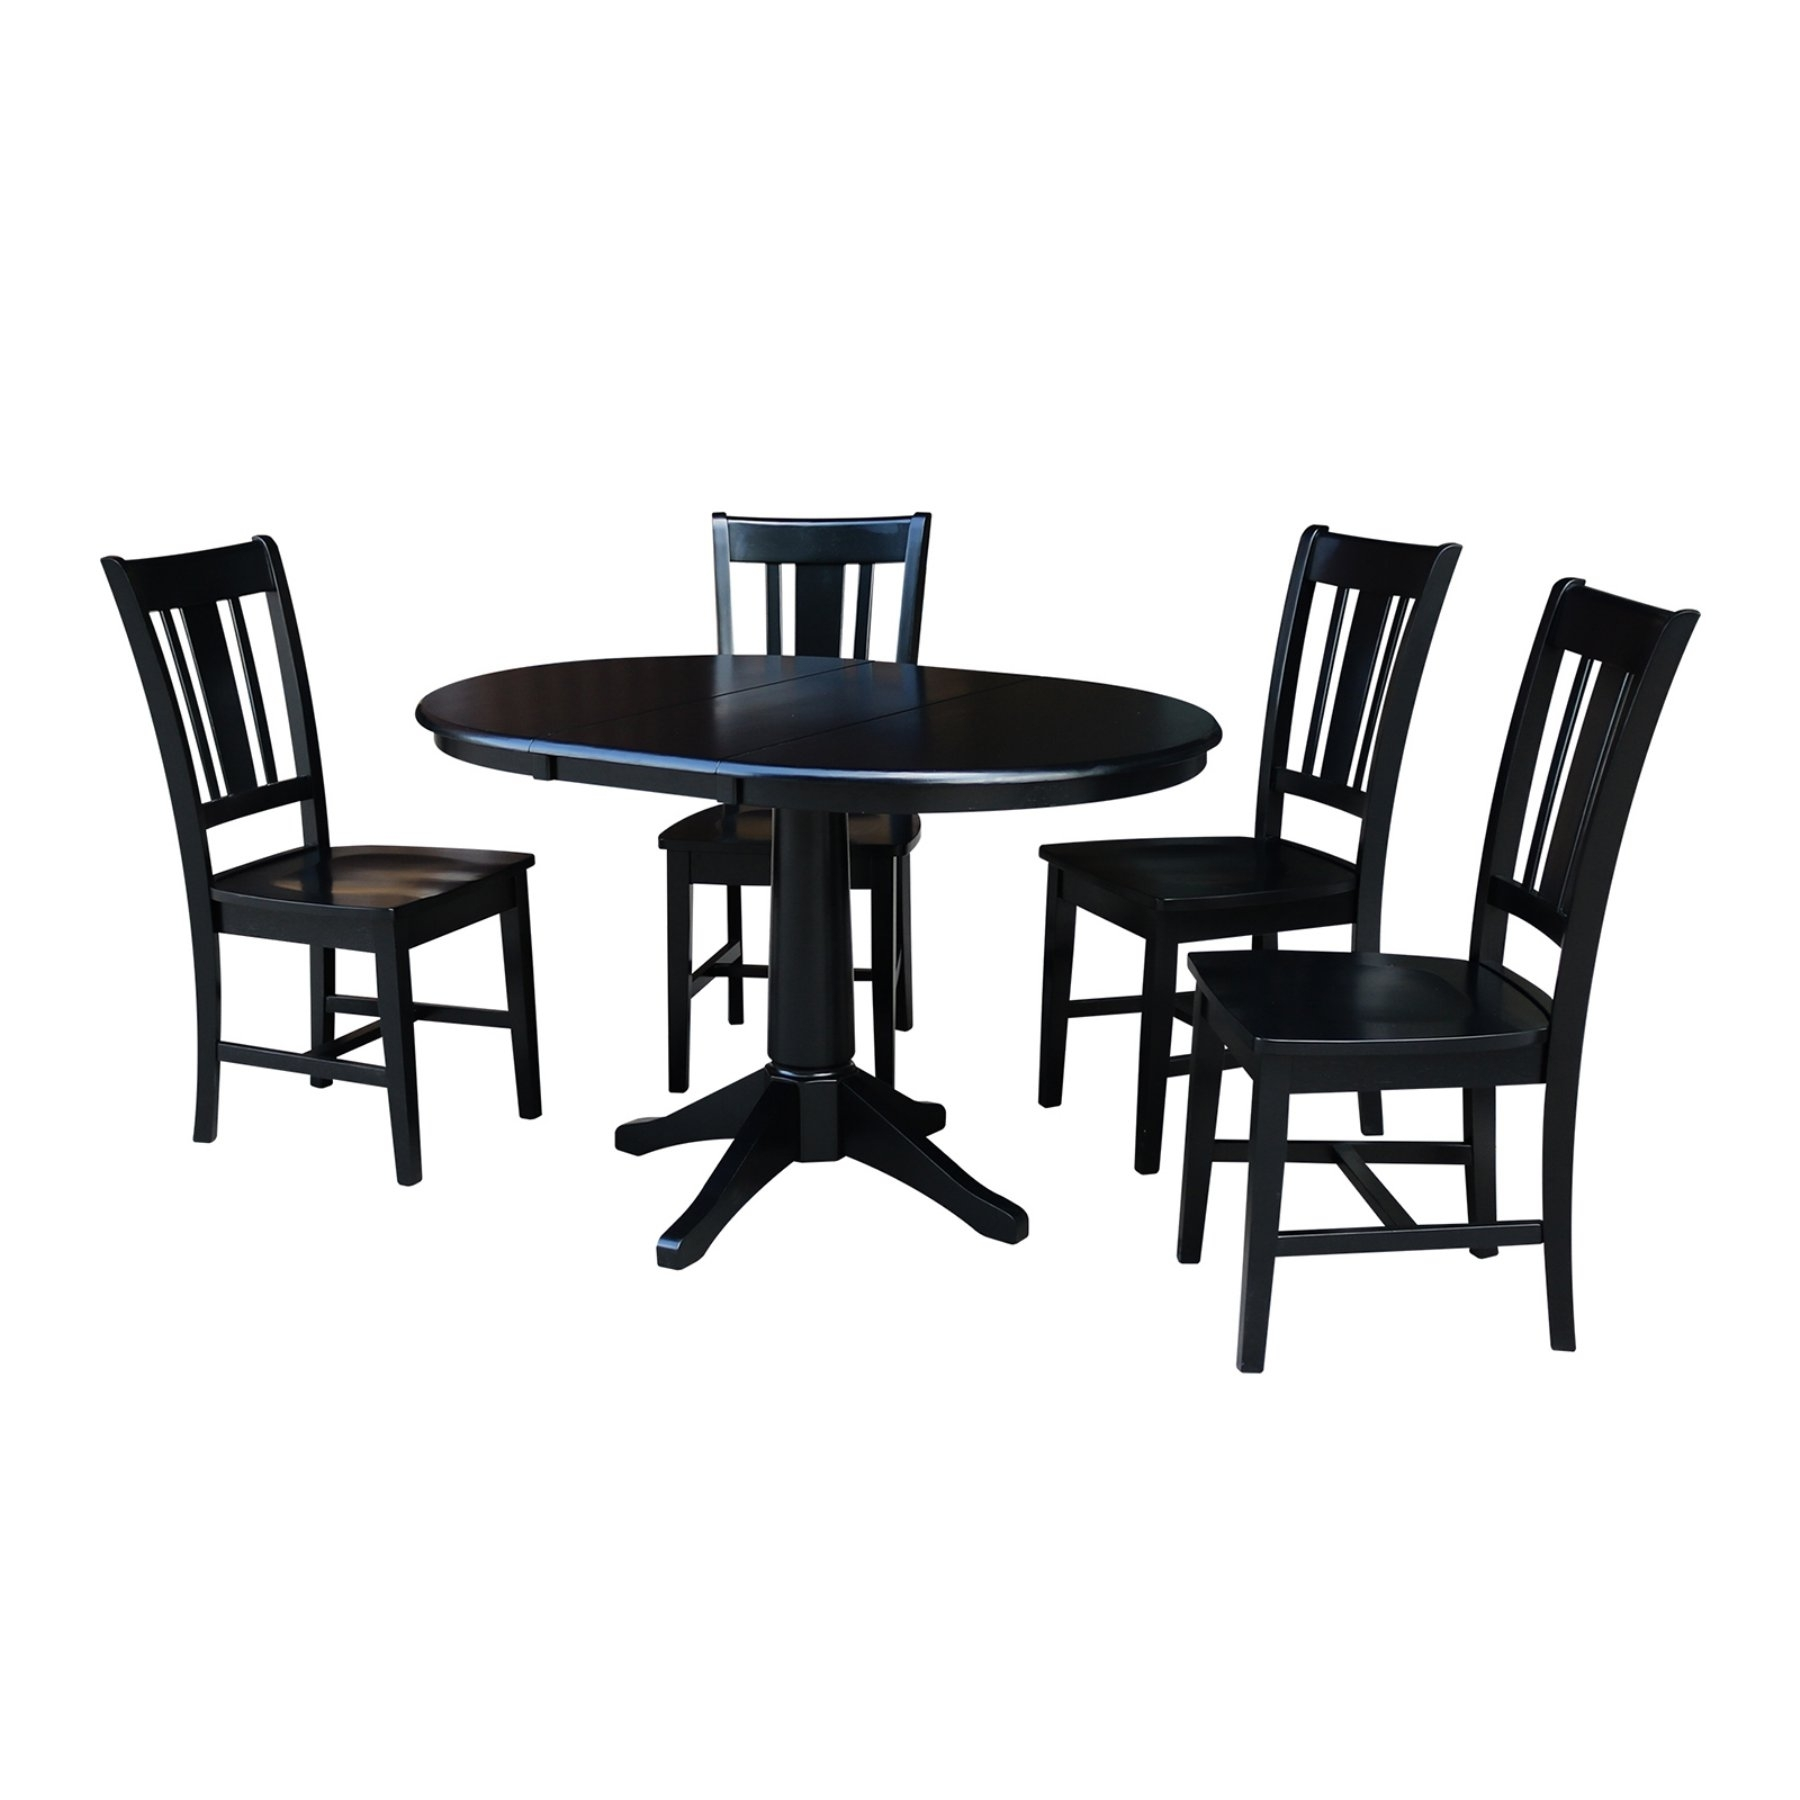 International Concepts 5 Piece Dining Table Set With Extension Leaf Pertaining To Current Kirsten 5 Piece Dining Sets (Image 11 of 20)